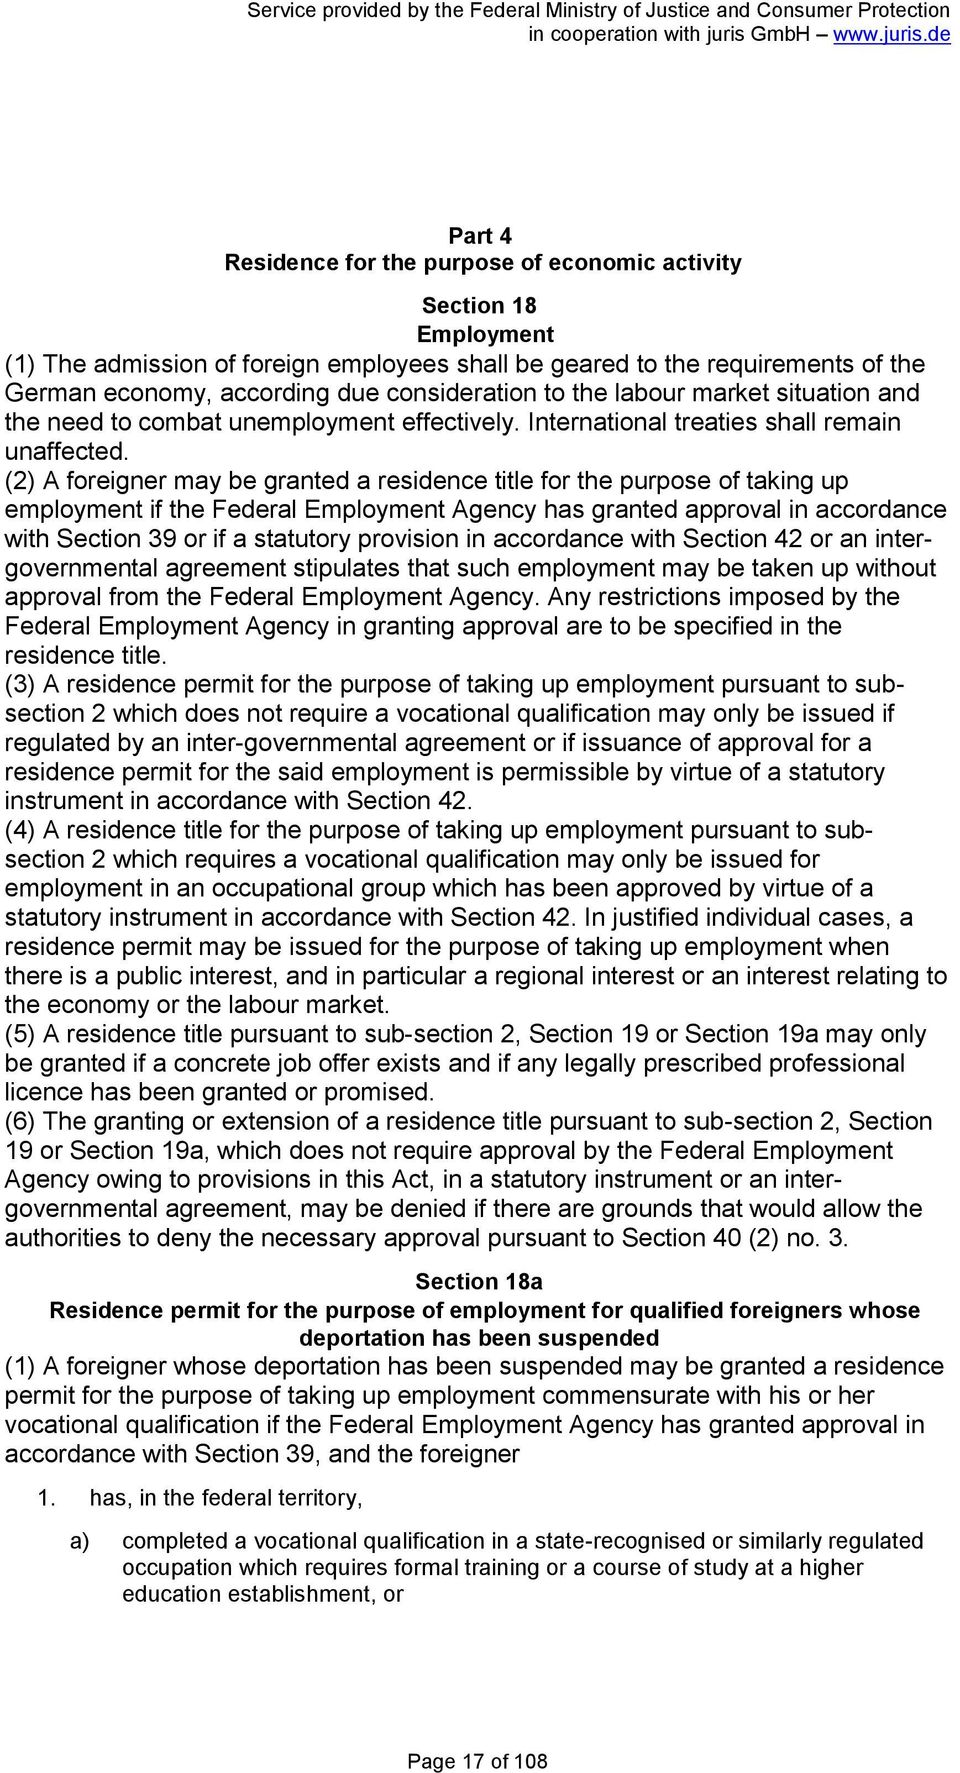 (2) A foreigner may be granted a residence title for the purpose of taking up employment if the Federal Employment Agency has granted approval in accordance with Section 39 or if a statutory